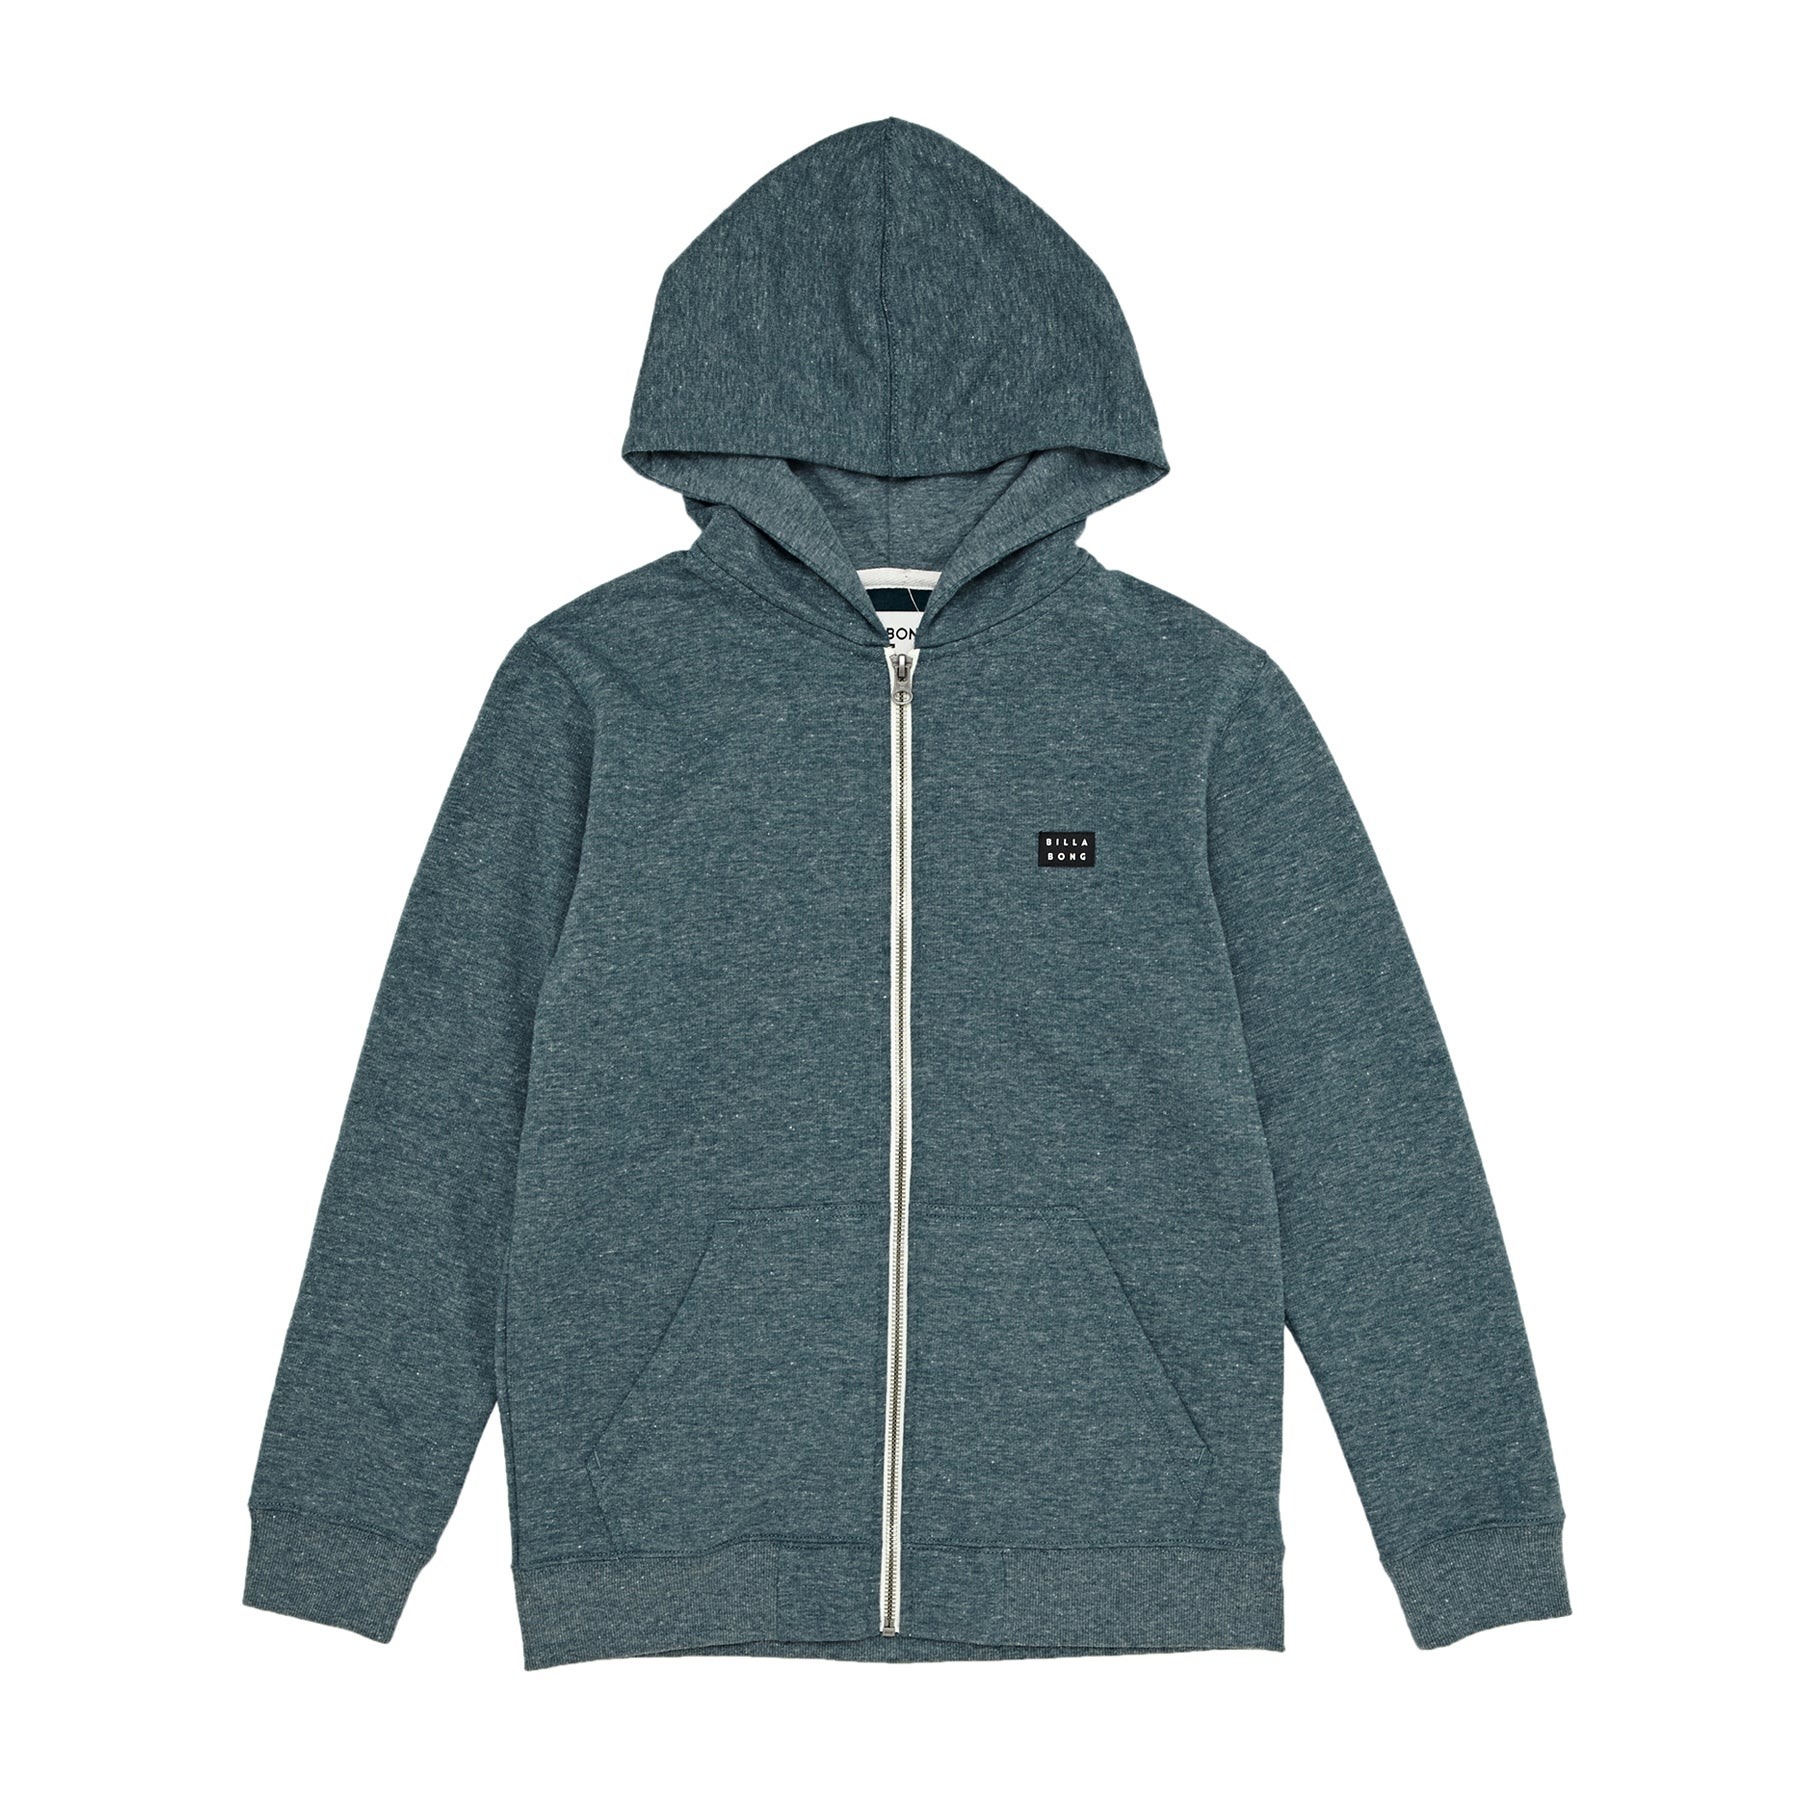 3acfe545c Billabong All Day Boys Kids Zip Hoody available from Surfdome